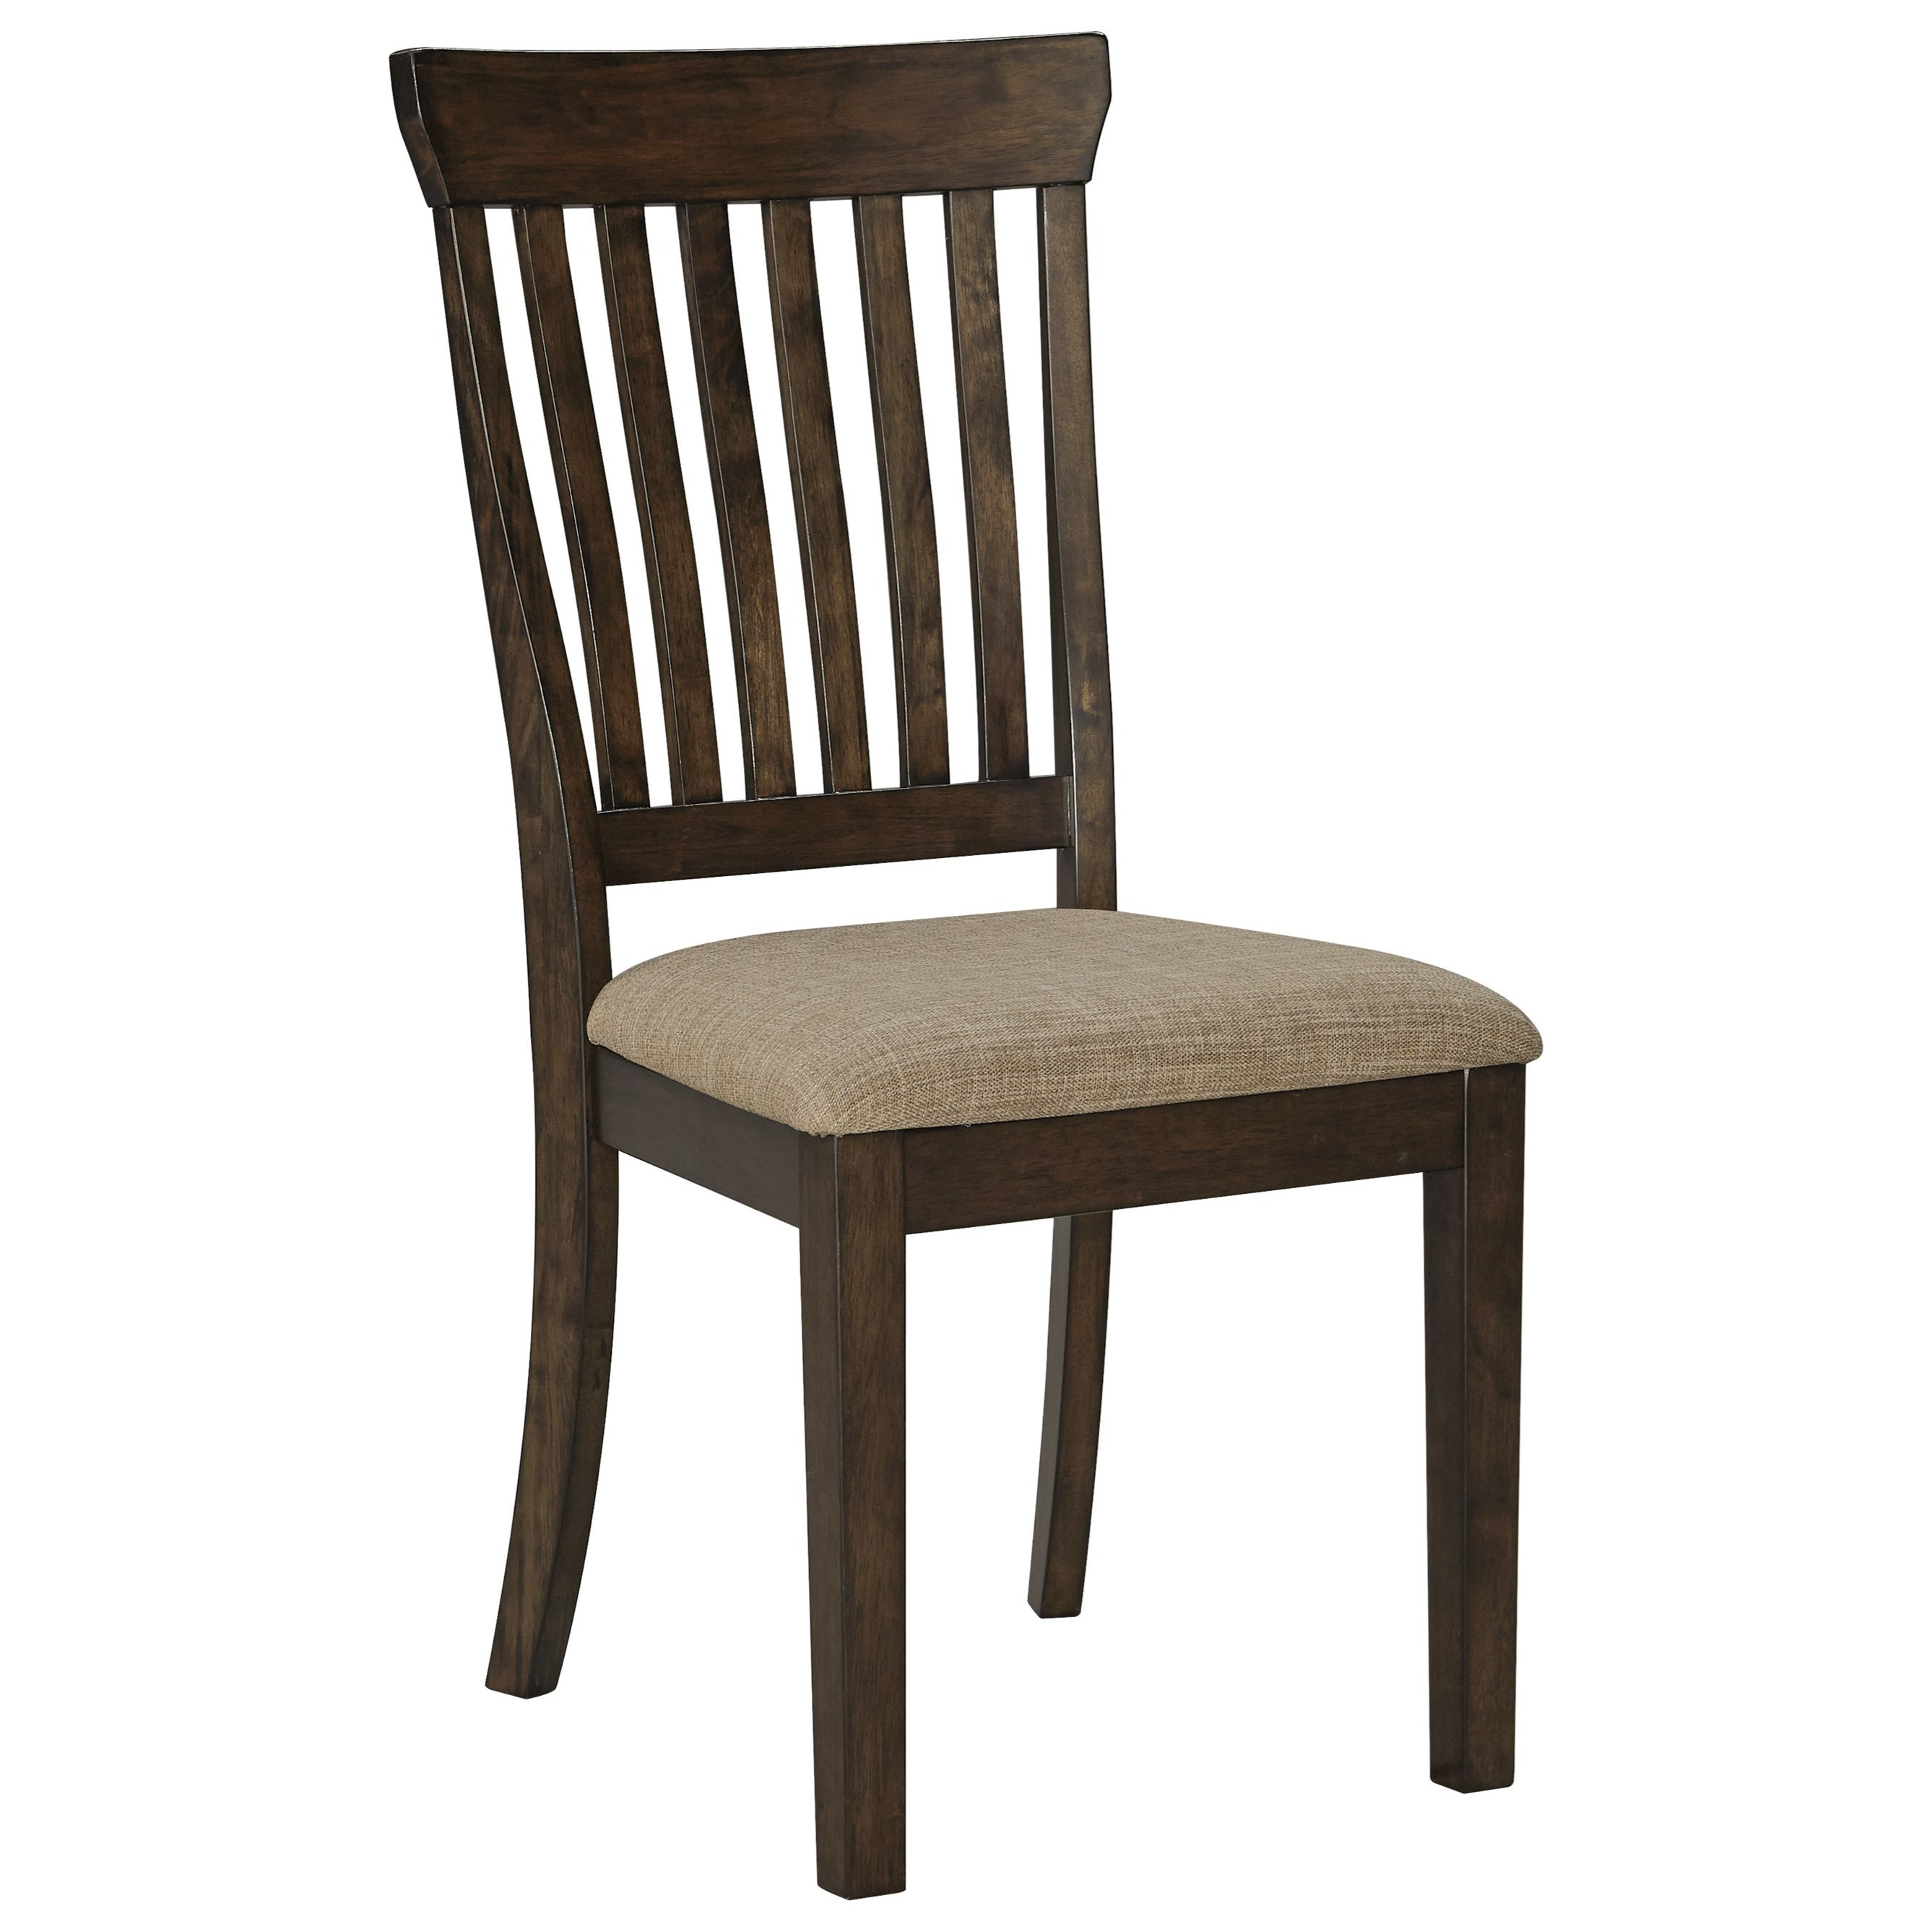 Ashley Furniture Alexee Side Chair - Item Number: D590-01